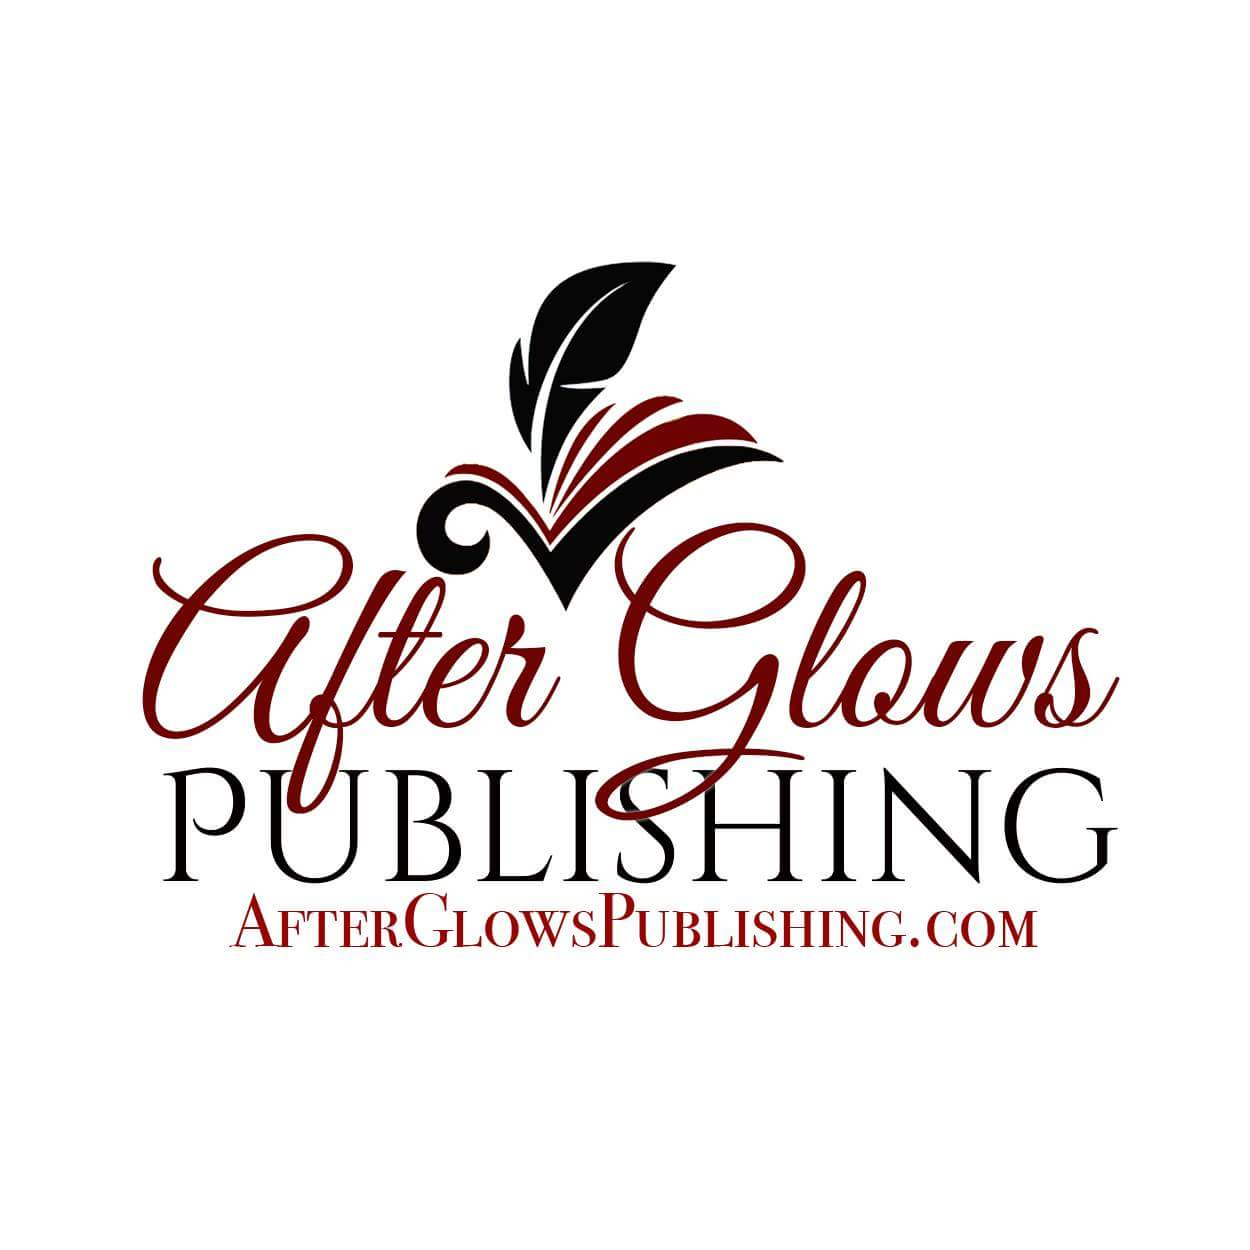 After Glows Publishing